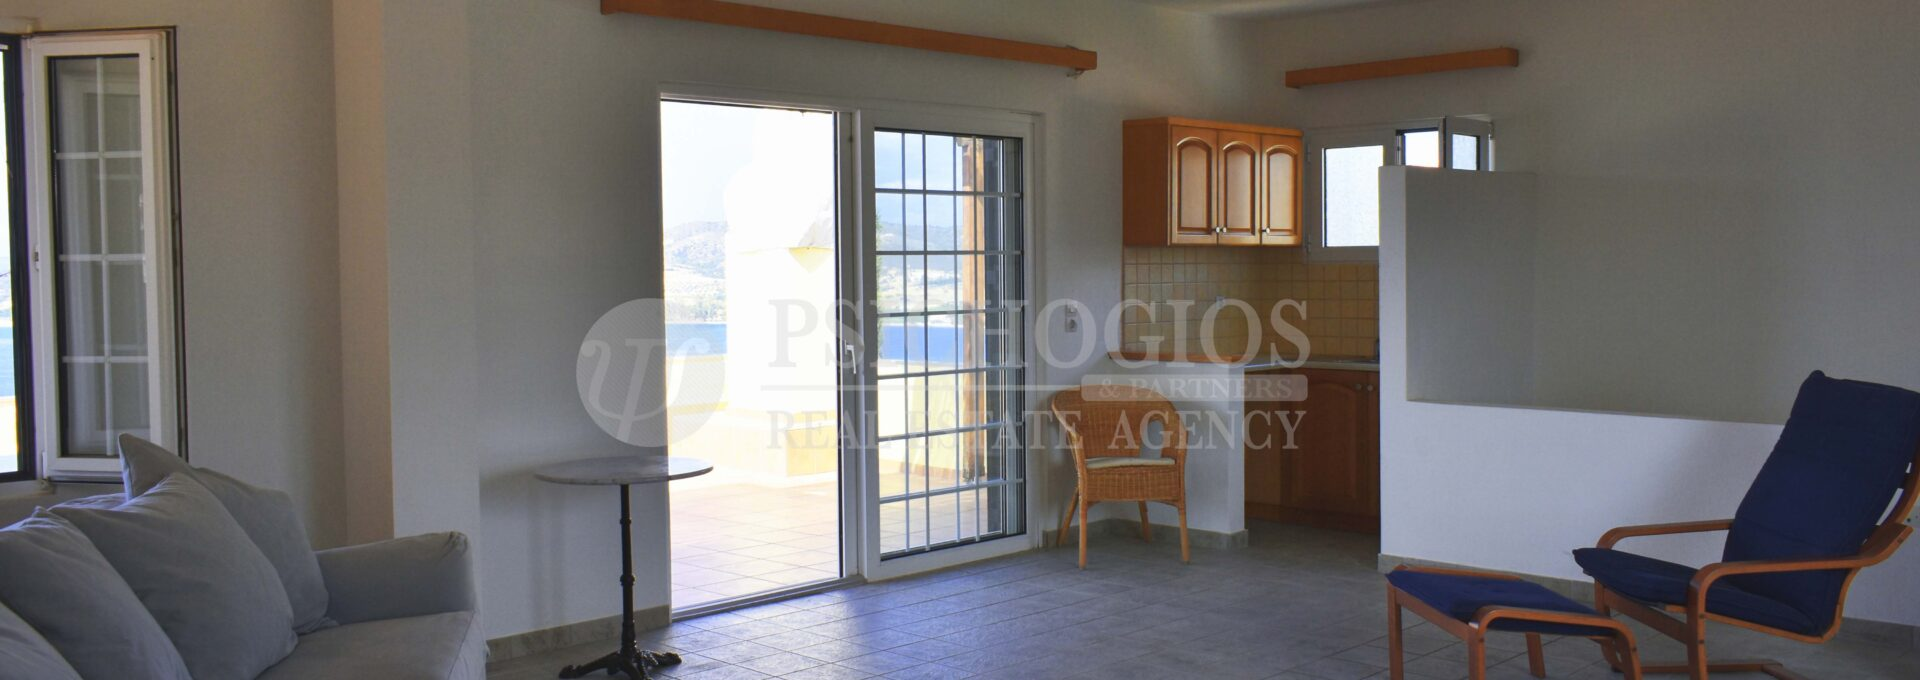 for_sale_house_223_square_meters_plot_730_square_meters_view_to_the_sea_ermioni_greece (2)